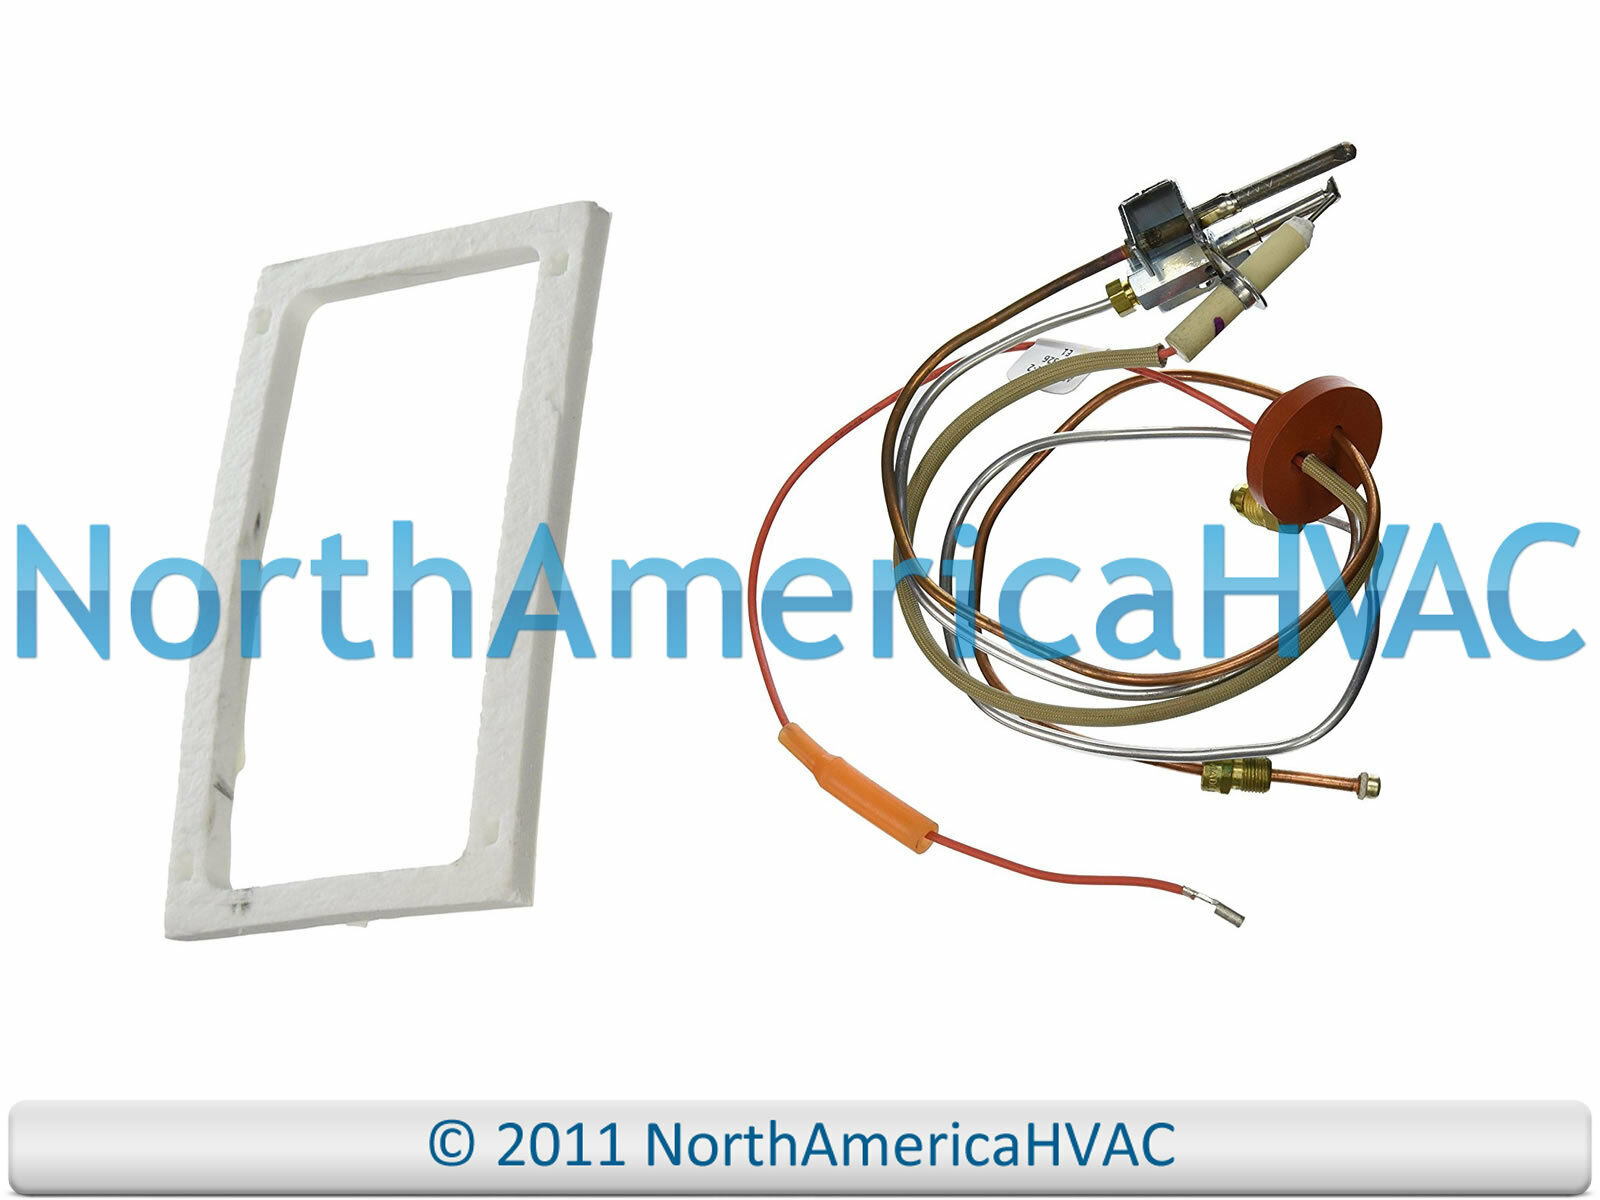 Oem Rheem Ruud Richmond Vanguard Ge Water Heater Igniter Pilot Assembly For Furnace Wiring Sp20127 1 Of 1free Shipping See More